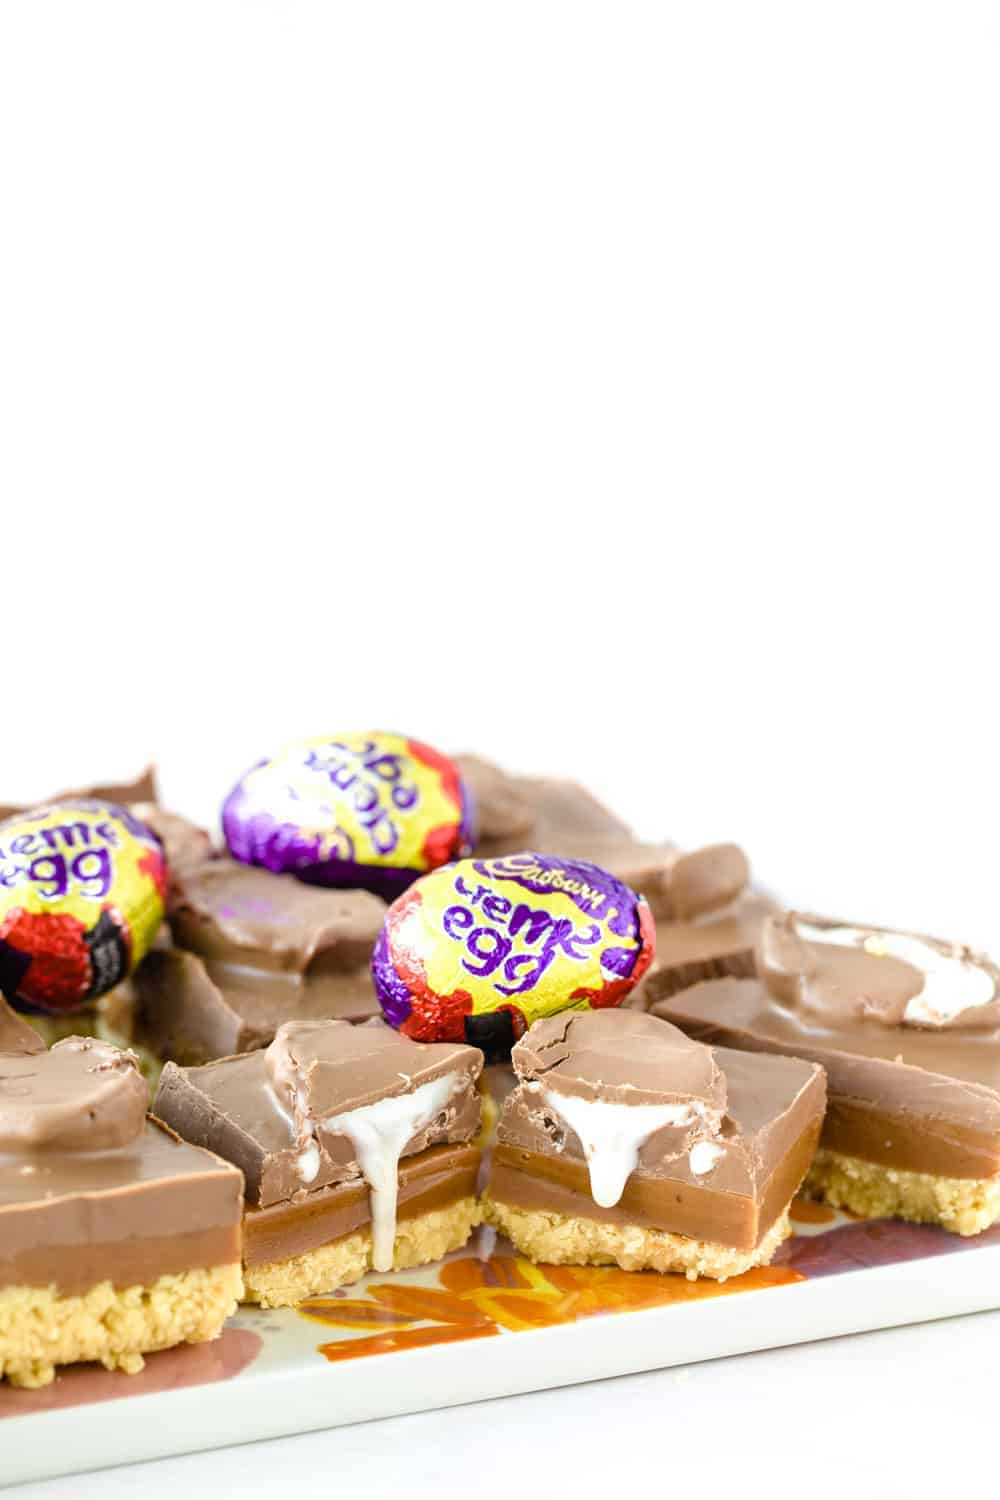 Slices of Creme egg caramel shortbread with Creme eggs on top